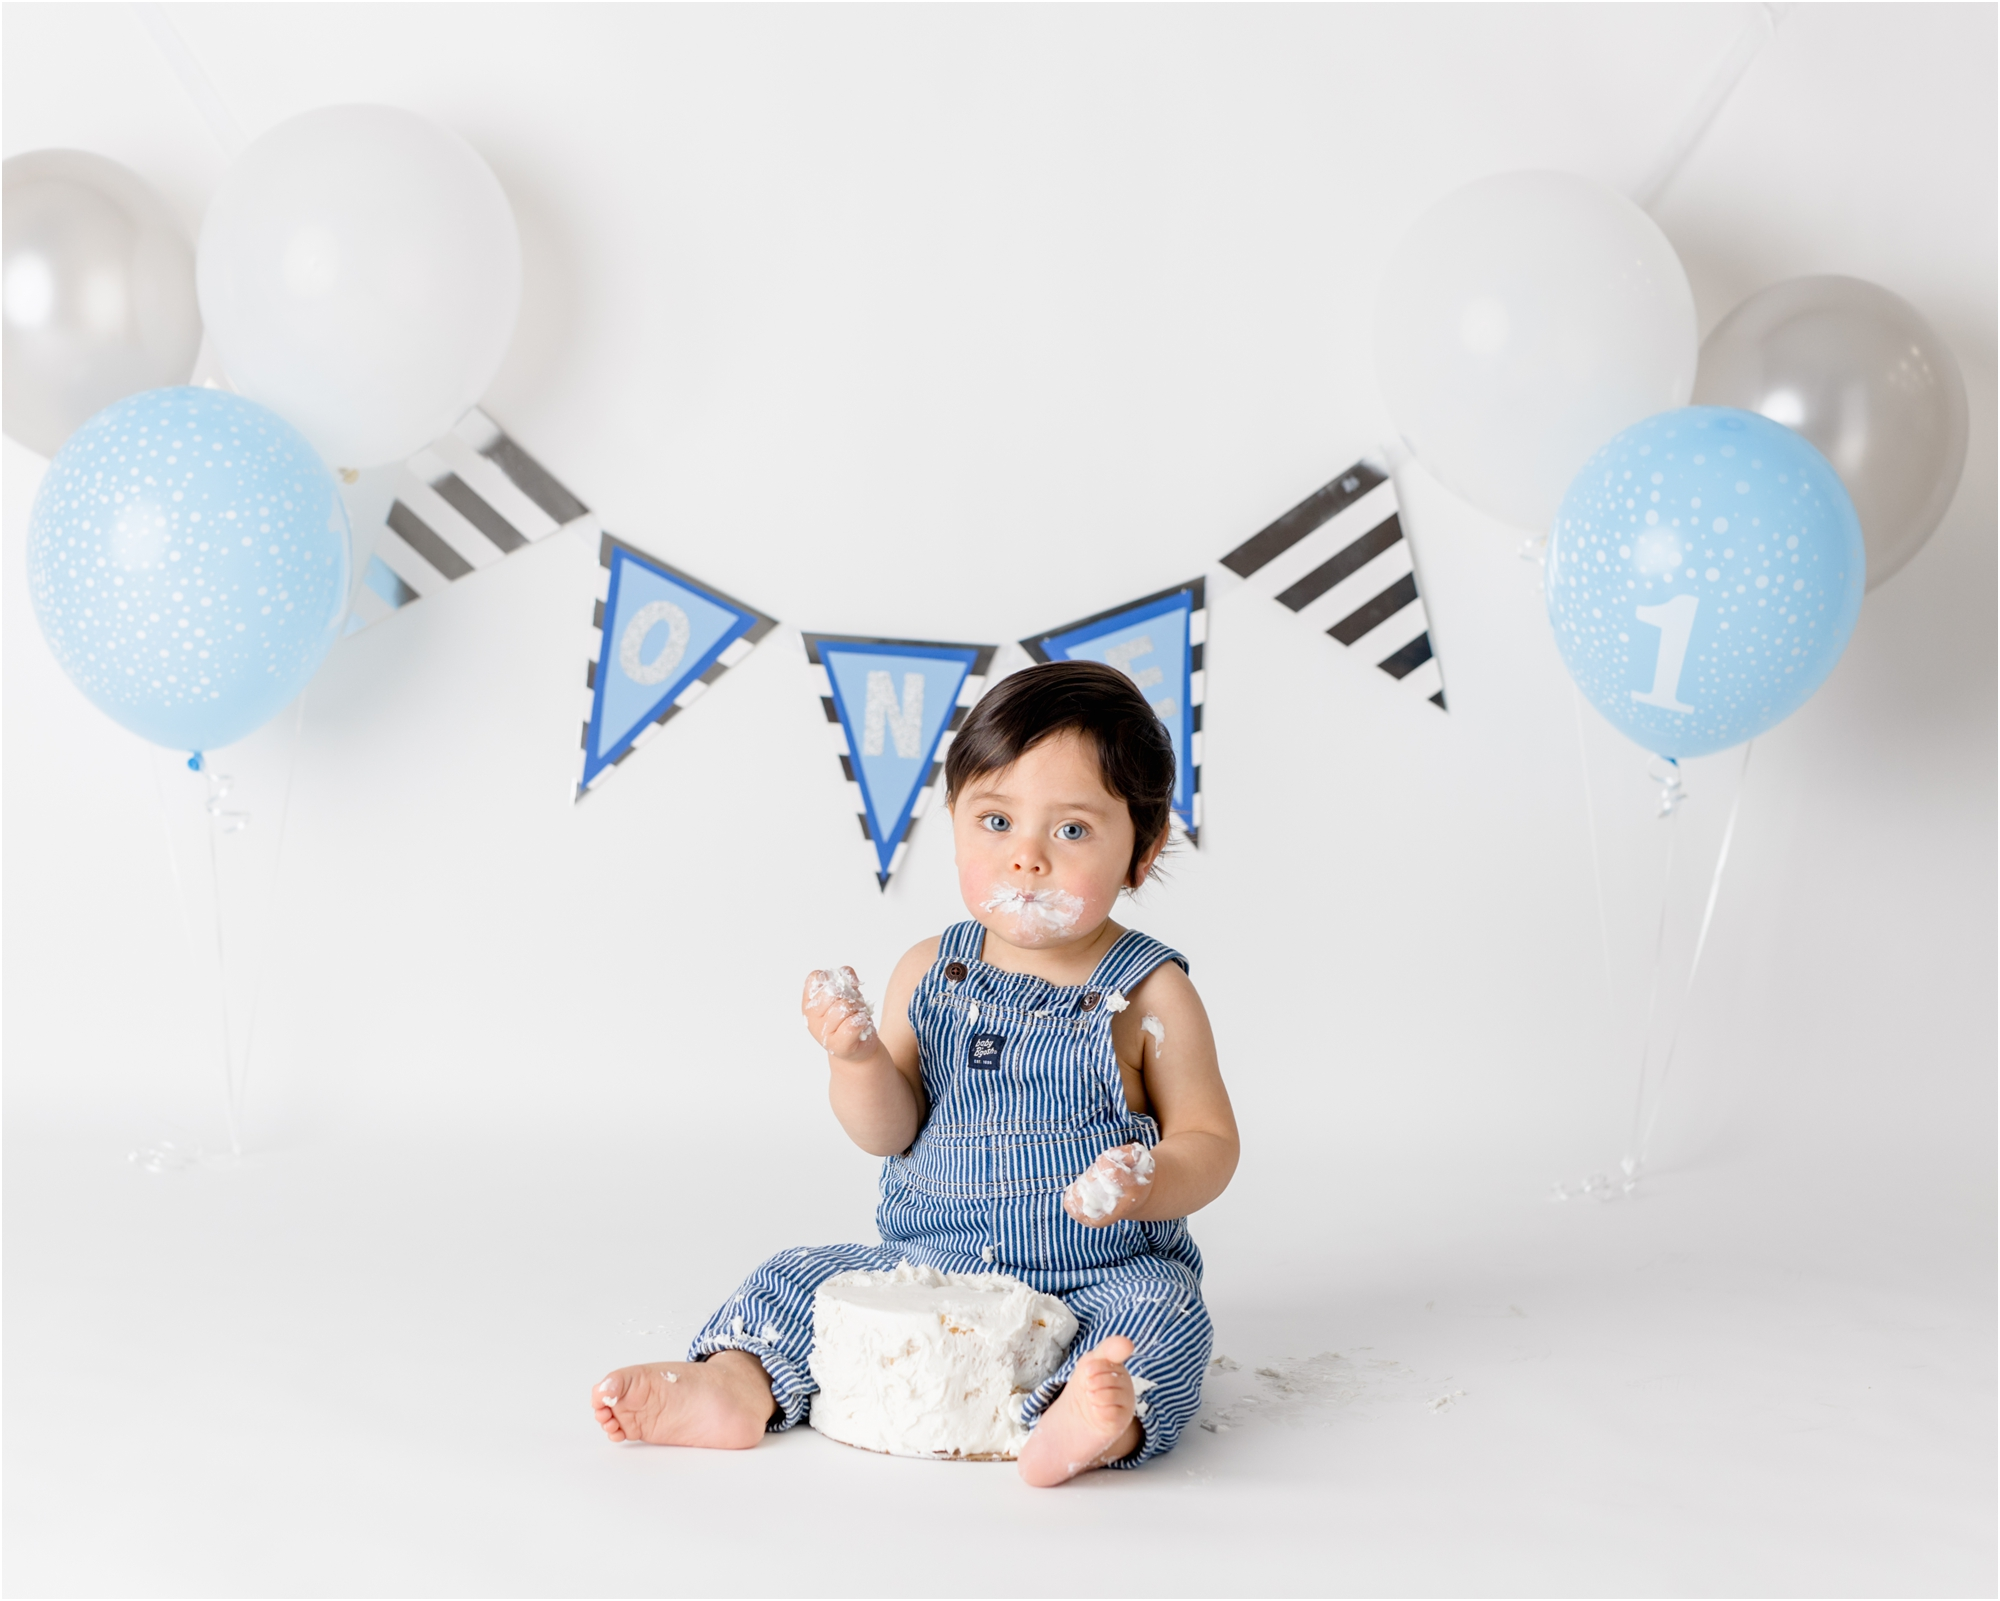 Boy's cake smash session with white, blue and silver theme and simple, classic decor. Photo by Houston family photographer, Lifetime of Clicks Photography.